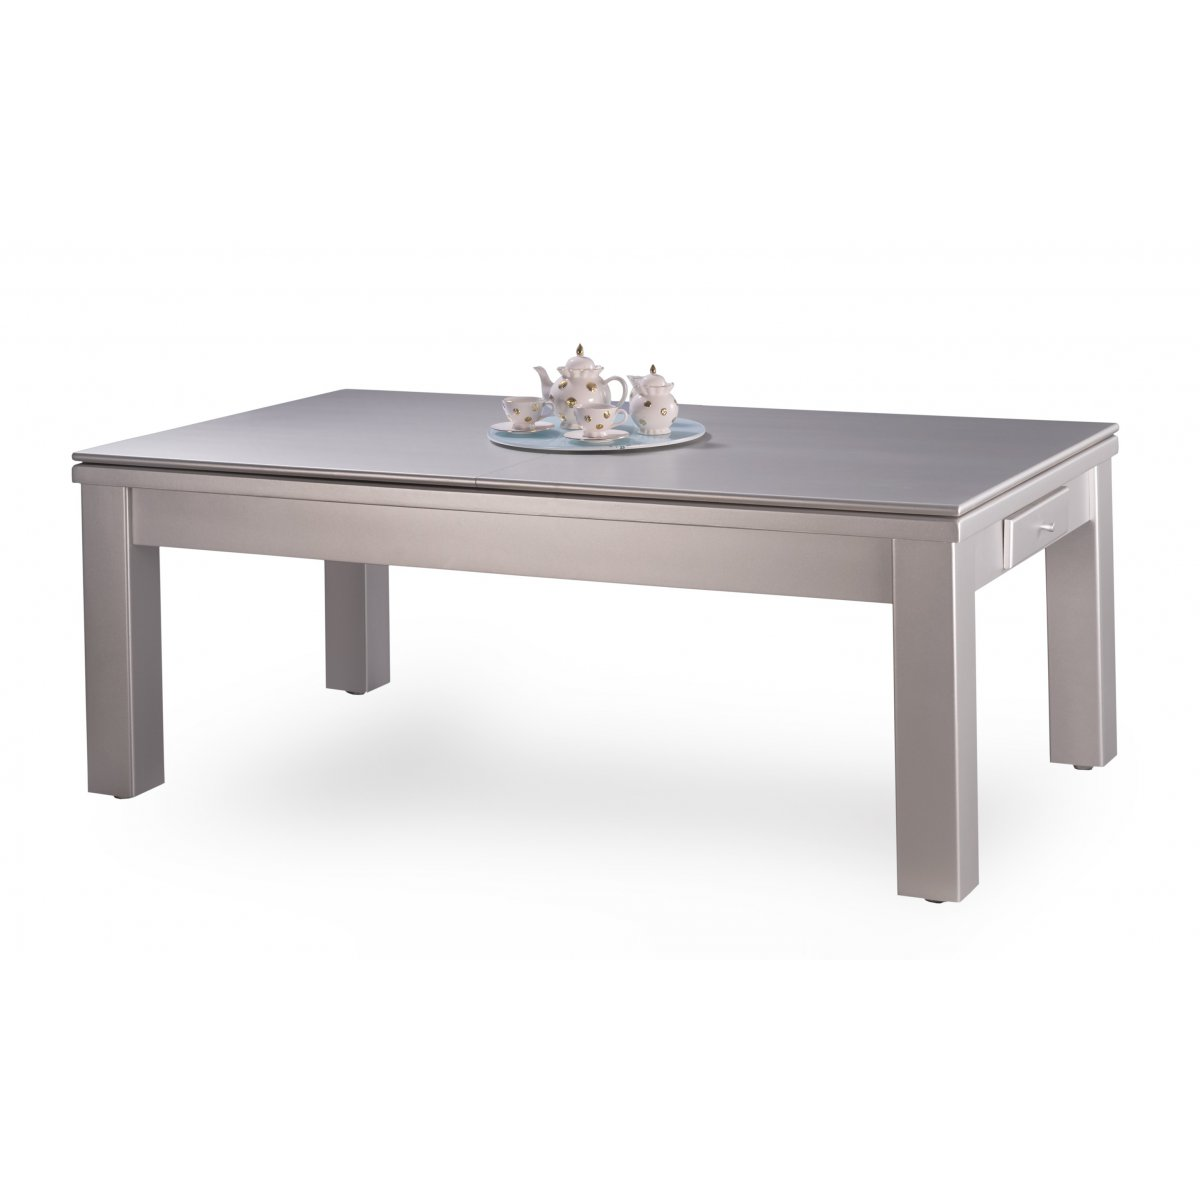 Table de billard prix billard americain us et billard - Table billard pas cher ...